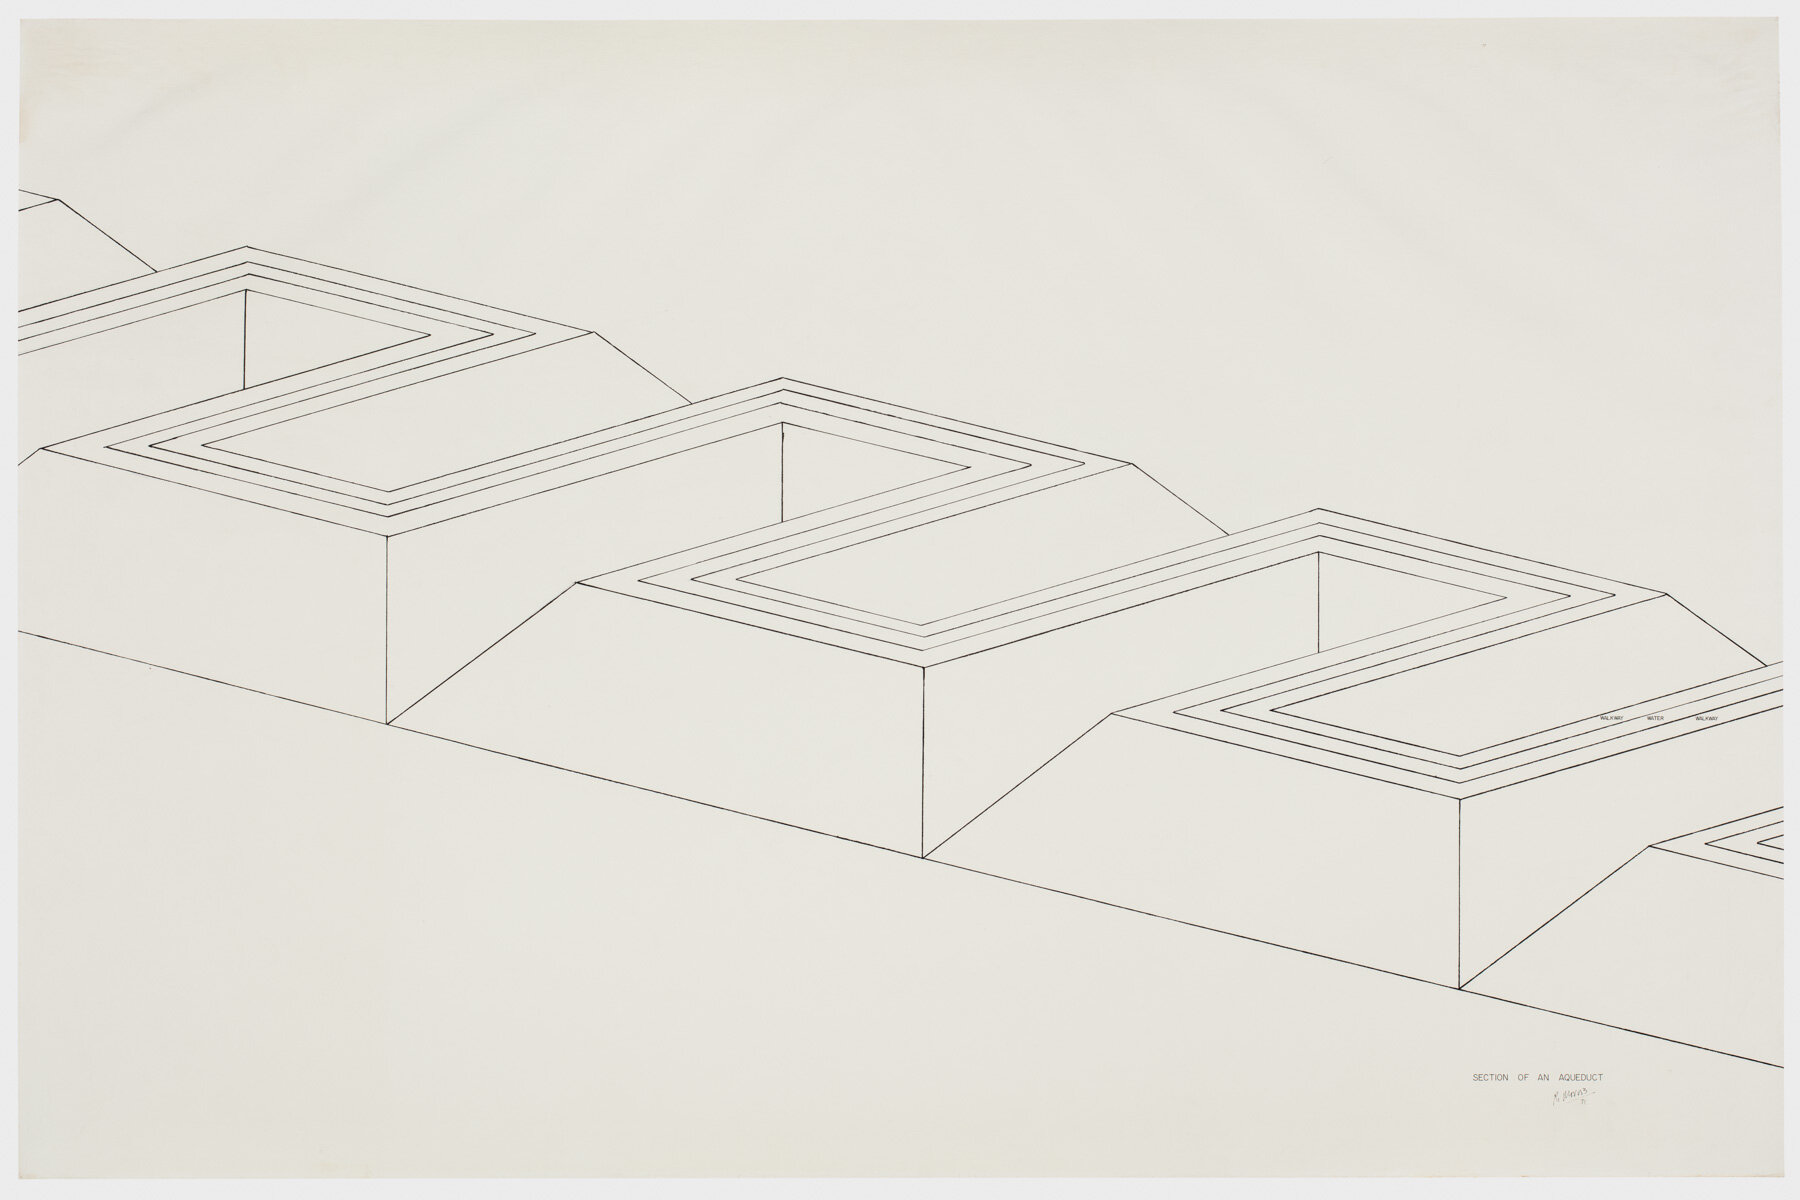 Robert Morris.  Section of an Aqueduct , 1971. Ink on paper, 42 x 64 in. (107 x 163 cm). Estate of Robert Morris, courtesy Castelli Gallery, New York. © 2019 The Estate of Robert Morris / Artists Rights Society (ARS), New York. Photo: Stan Narten